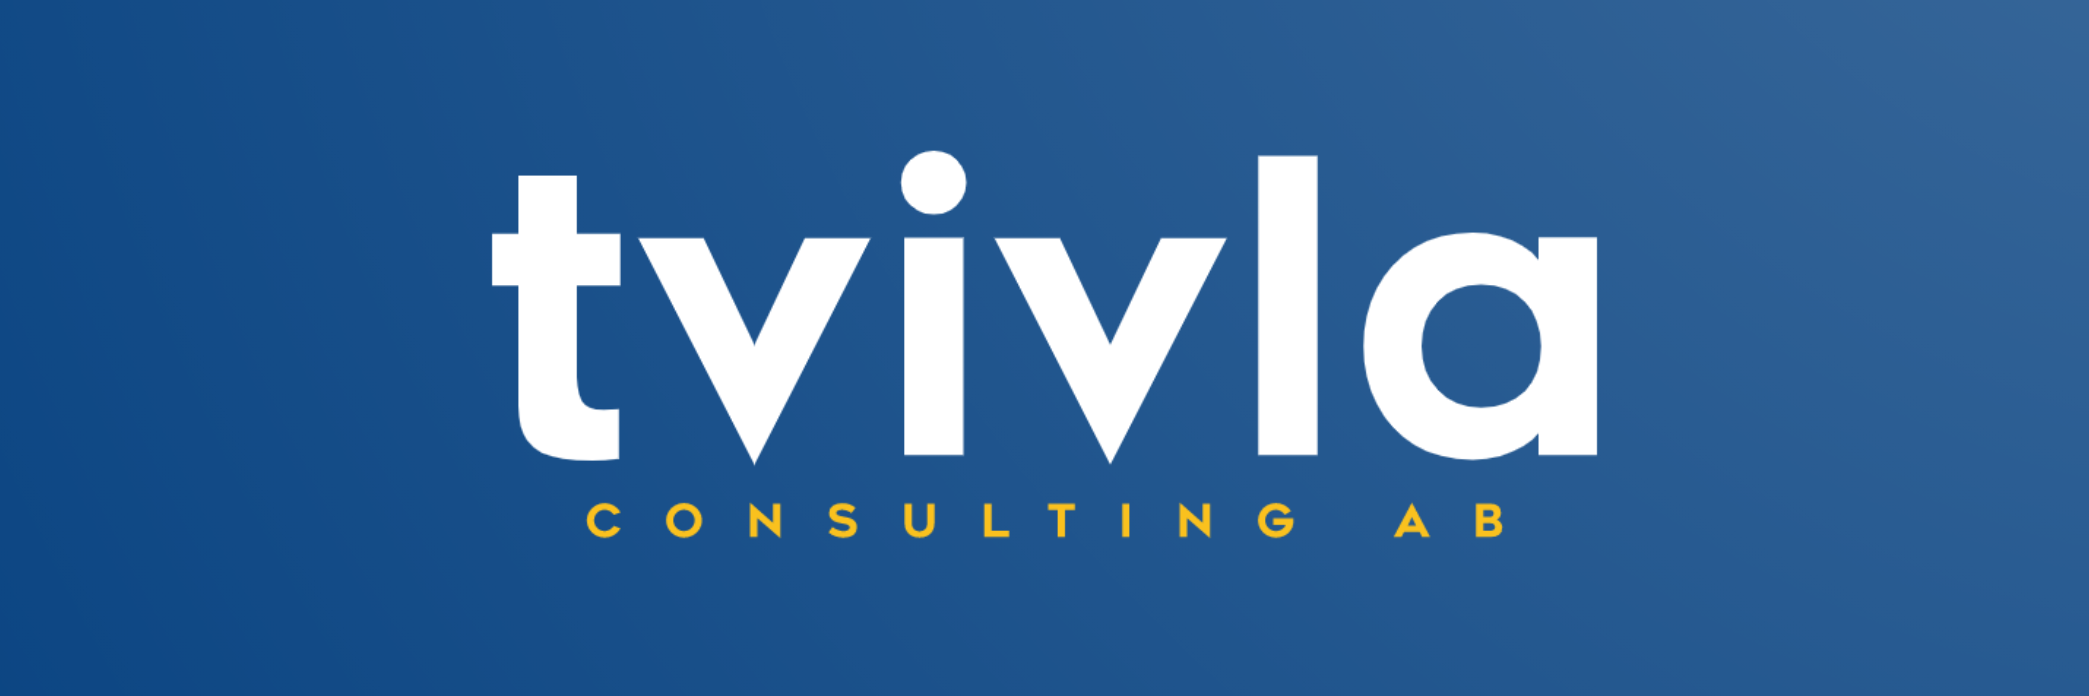 Tvivla Consulting AB